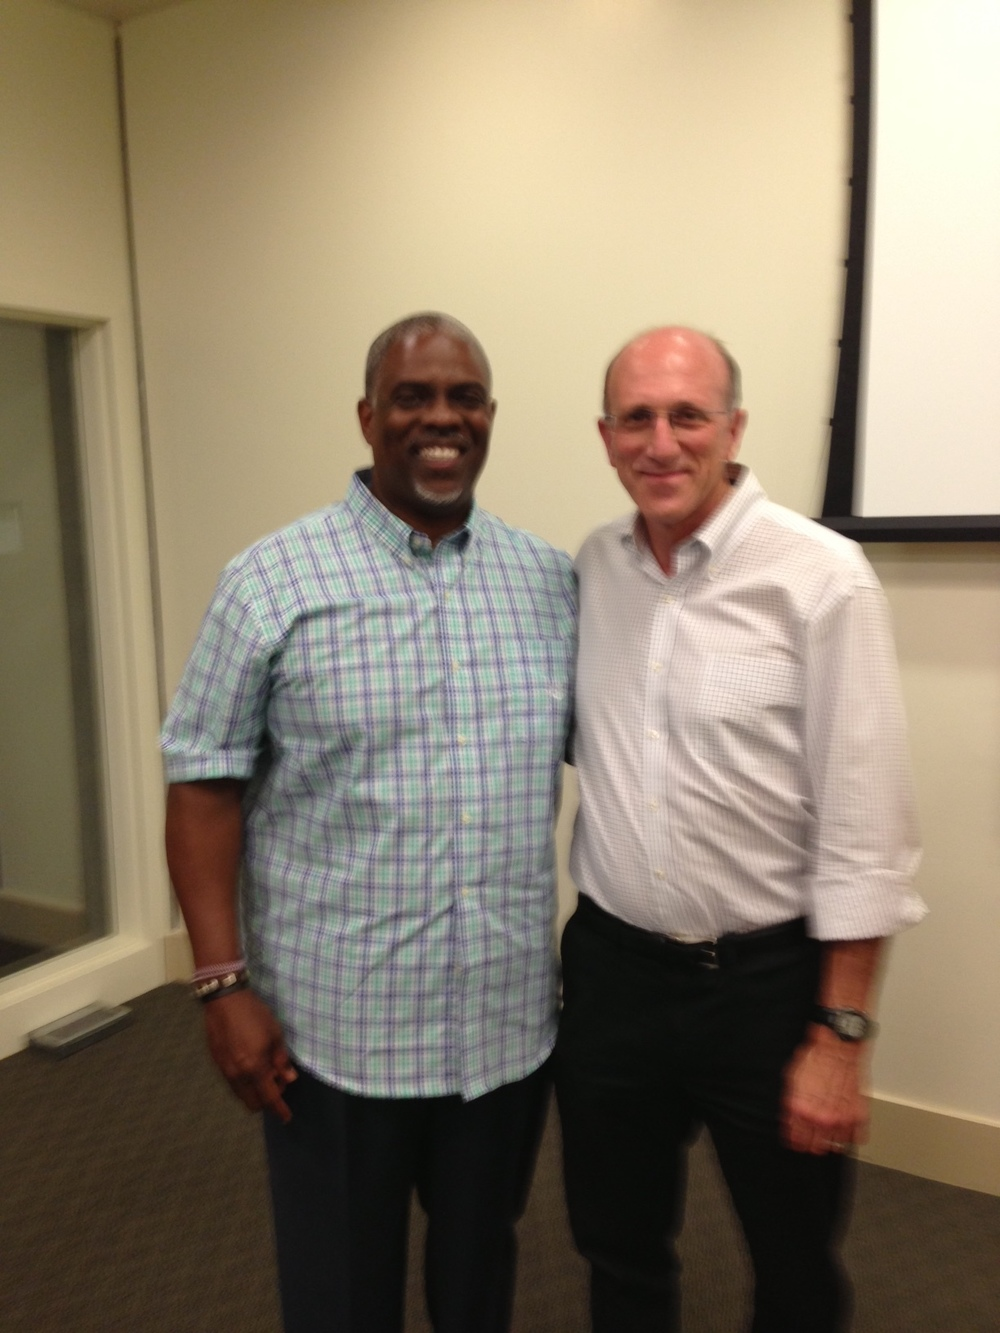 Professor Mark T. Harris, Esq. with Councilman Jay Schenirer of Sacramento